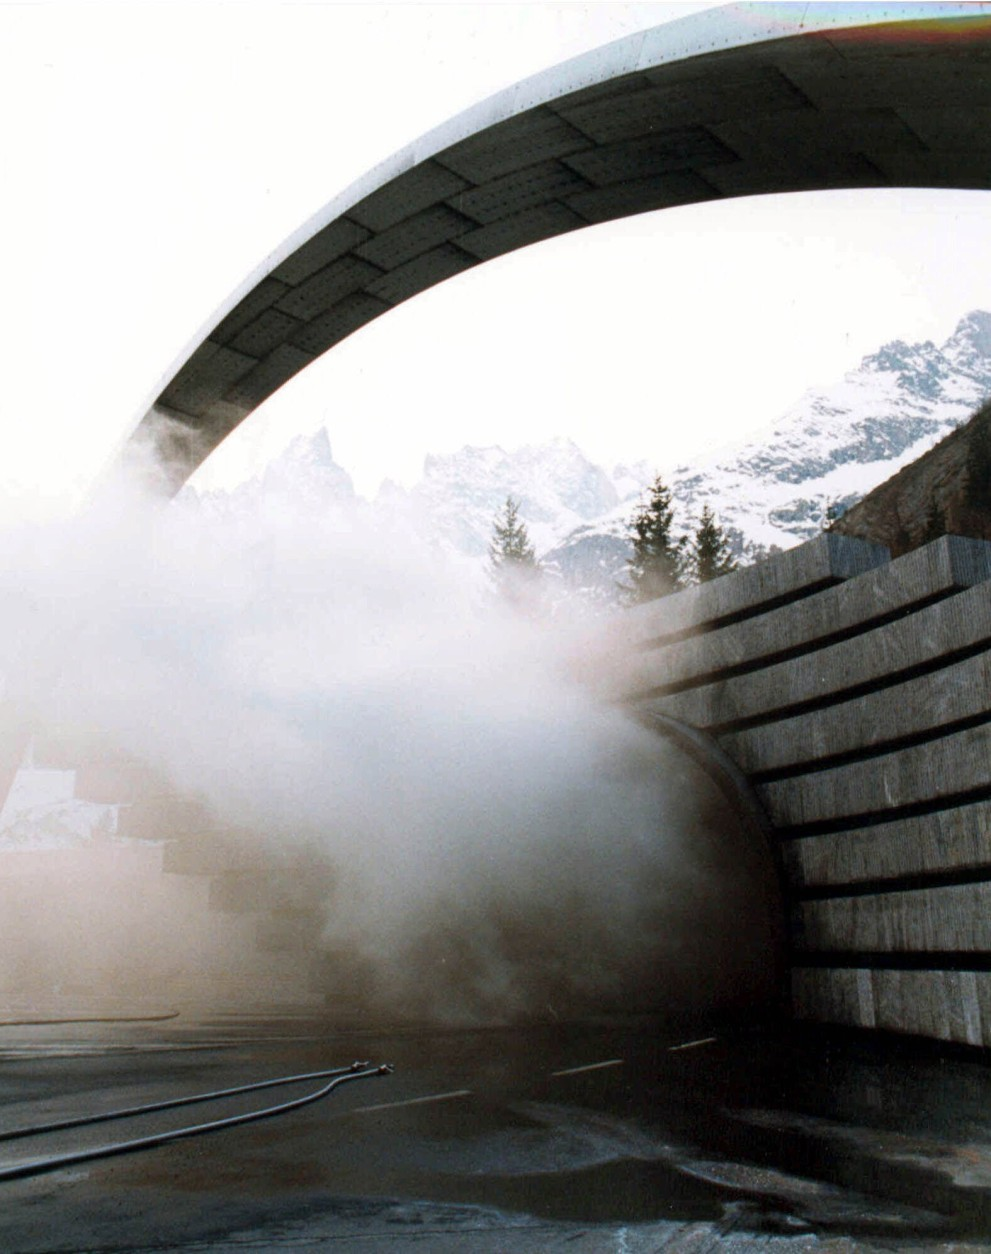 A view of the  the entrance of the Mont Blanc (Monte Bianco) tunnel in Courmayeur, Northern Italy, as smoke pours out  Thursday, March 25, 1999. Reports say at least 30 people  were killed in the tunnel under Mont Blanc after a truck caught fire Wednesday, blocking access with thick smoke. (AP Photo/Stefano Sarti)